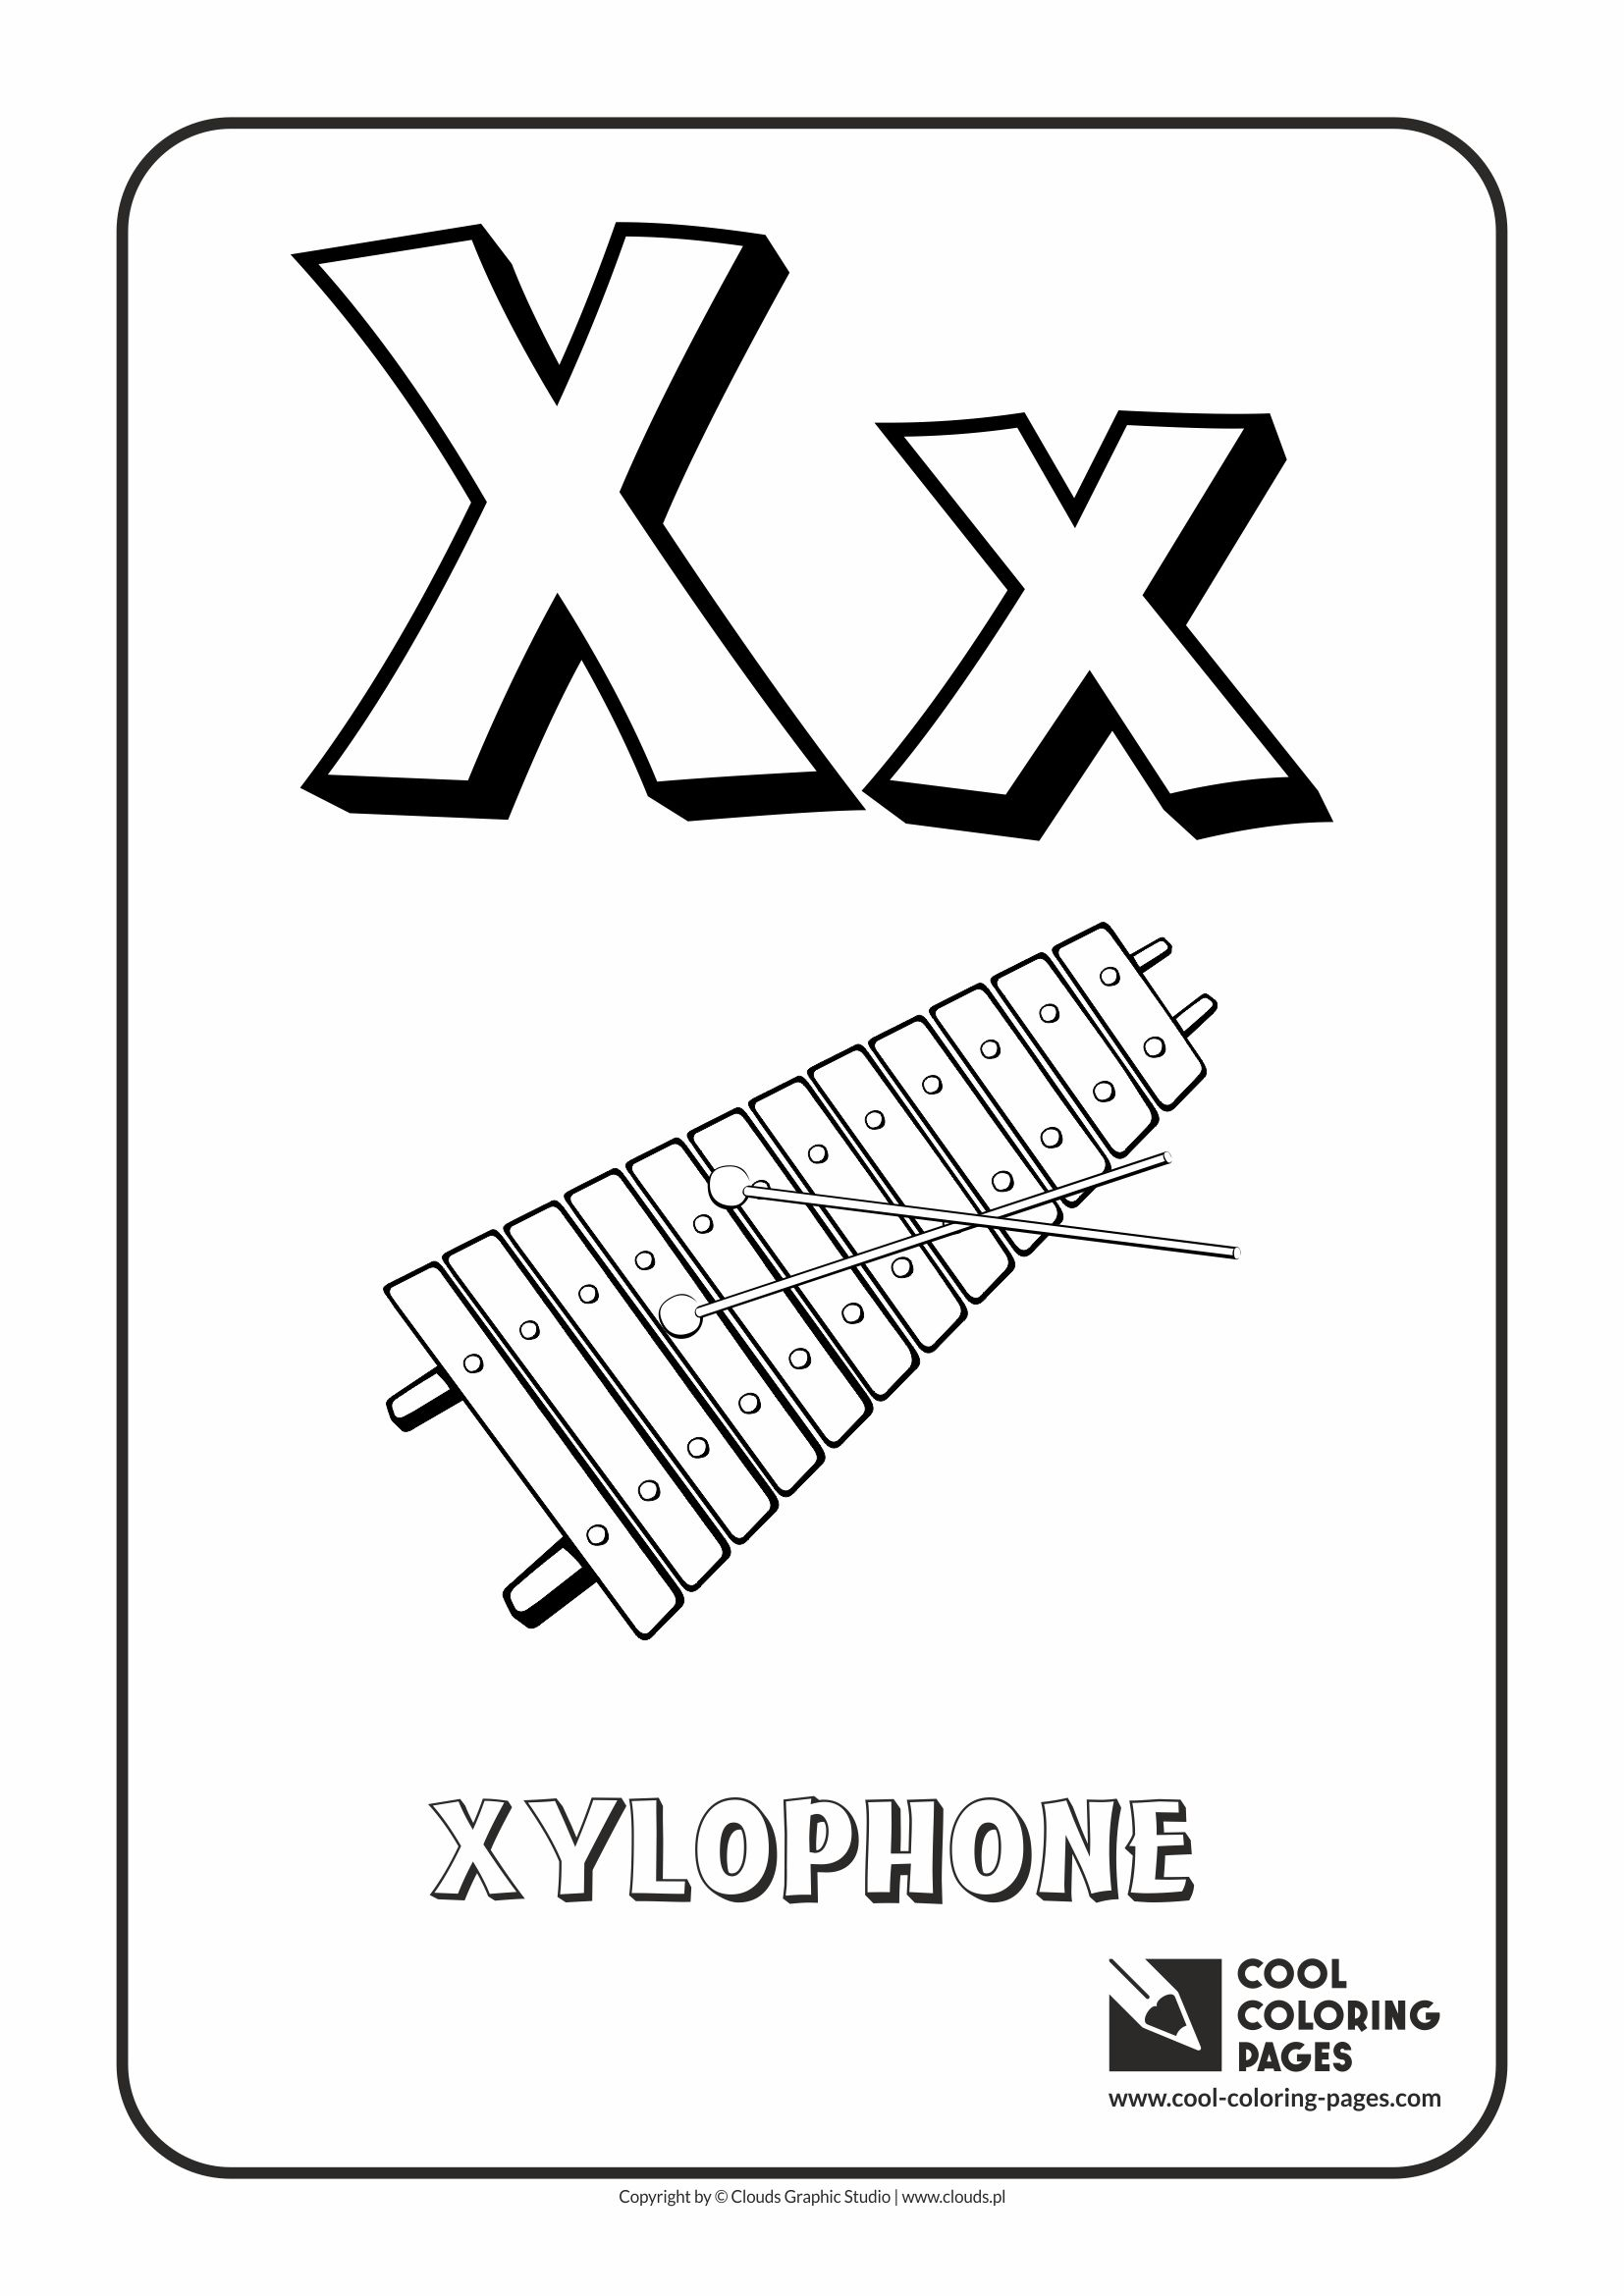 X ray coloring sheets - Cool Coloring Pages Alphabet Letter X Coloring Page With Letter X